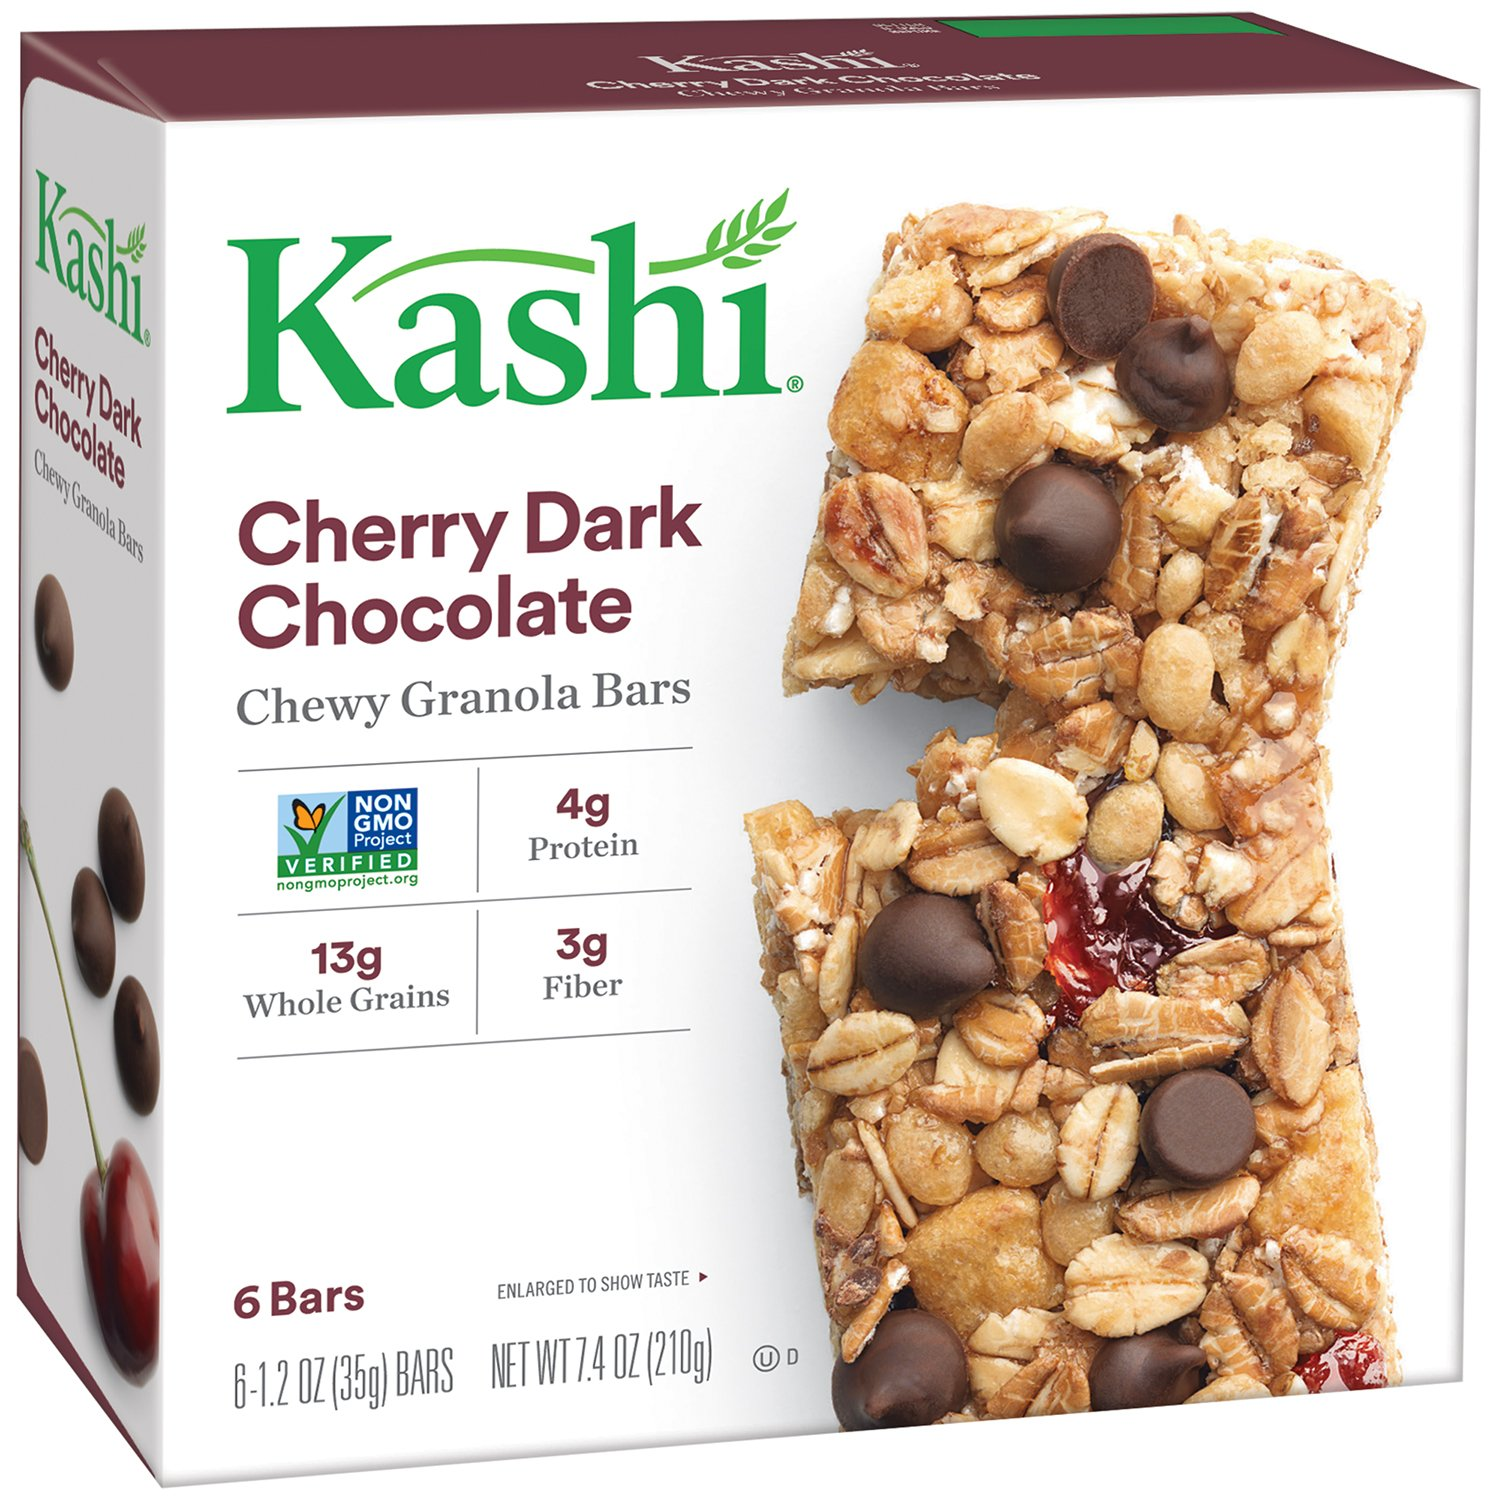 Kashi TLC ! Super beauty product restock quality top! Chewy Granola Bar Dark Cherry Bo Chocolate SEAL limited product 7.4-Ounce